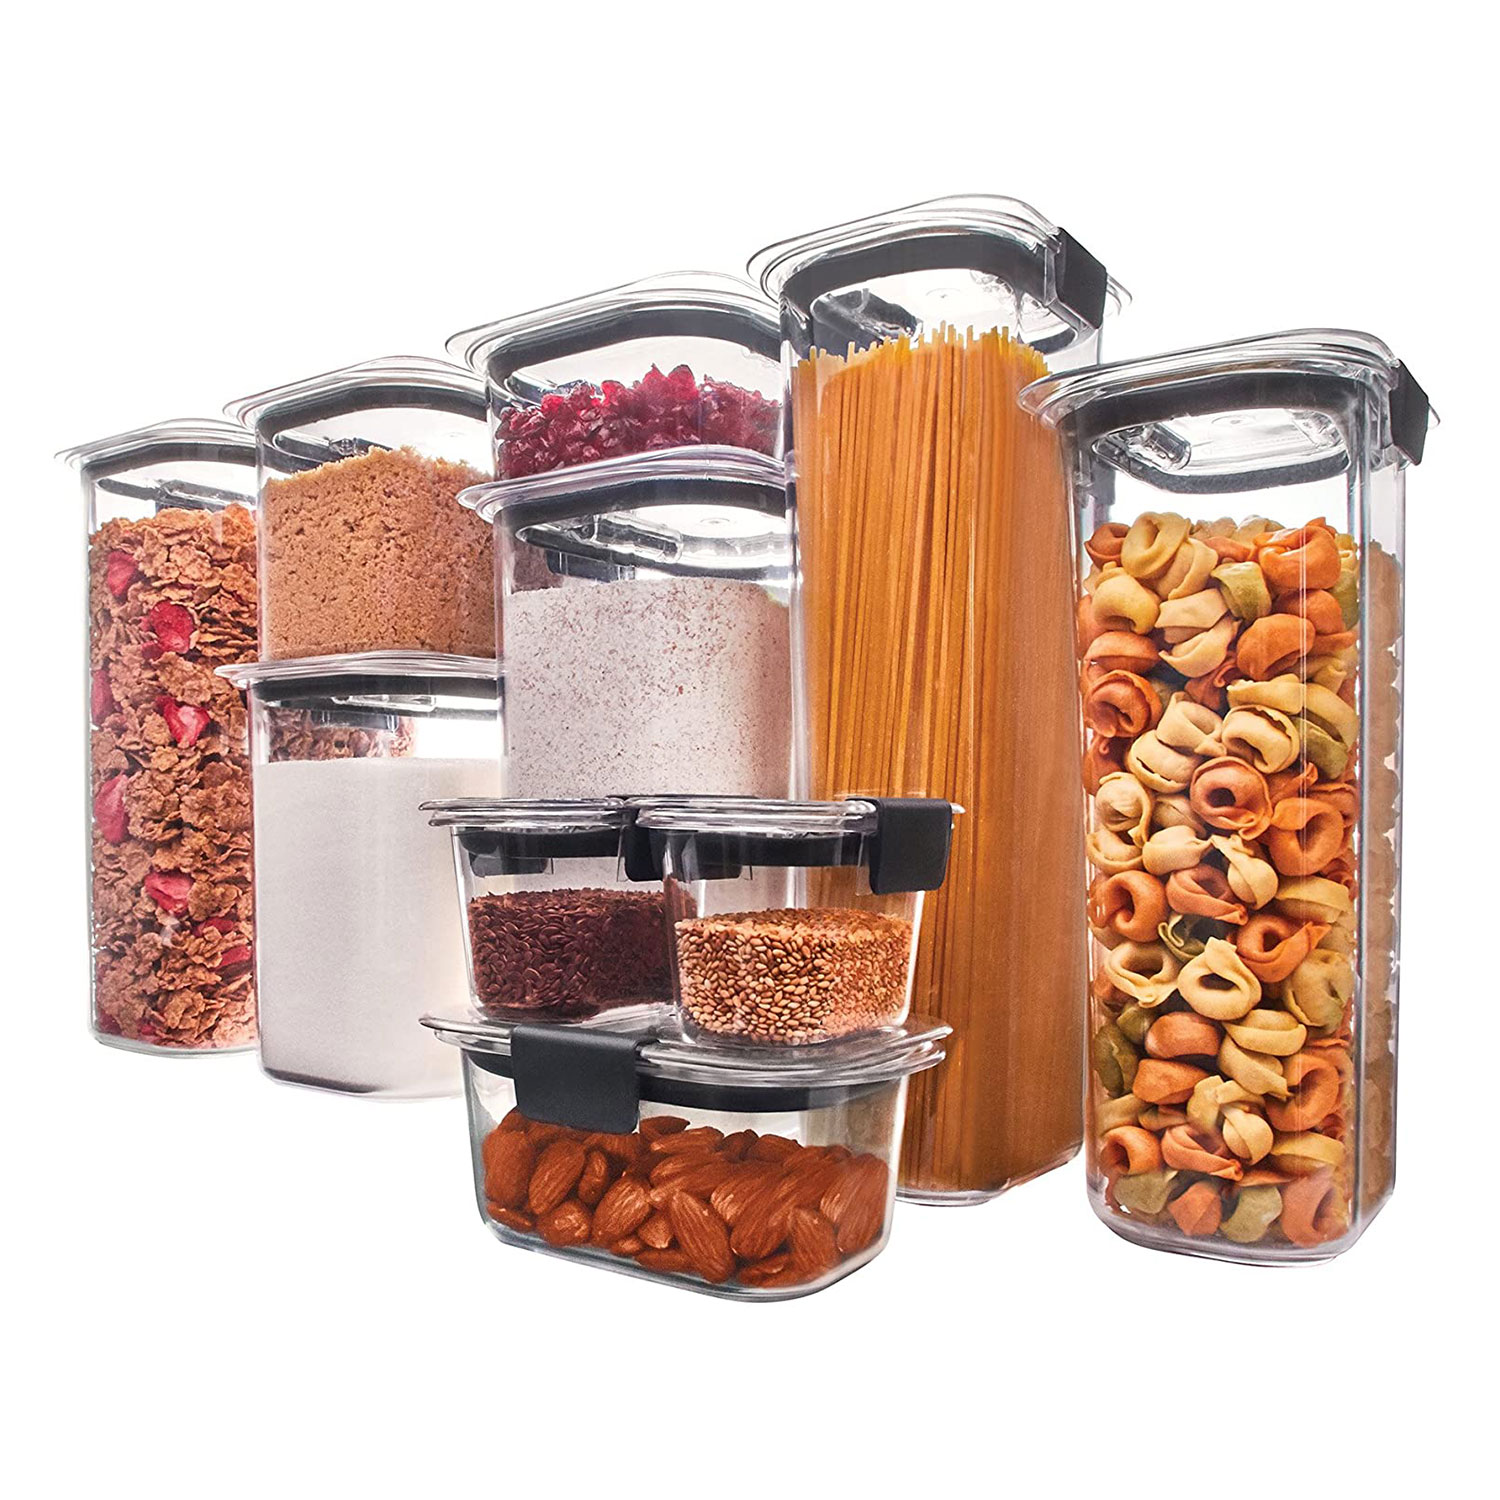 rubbermade food storage organization containers airtight set